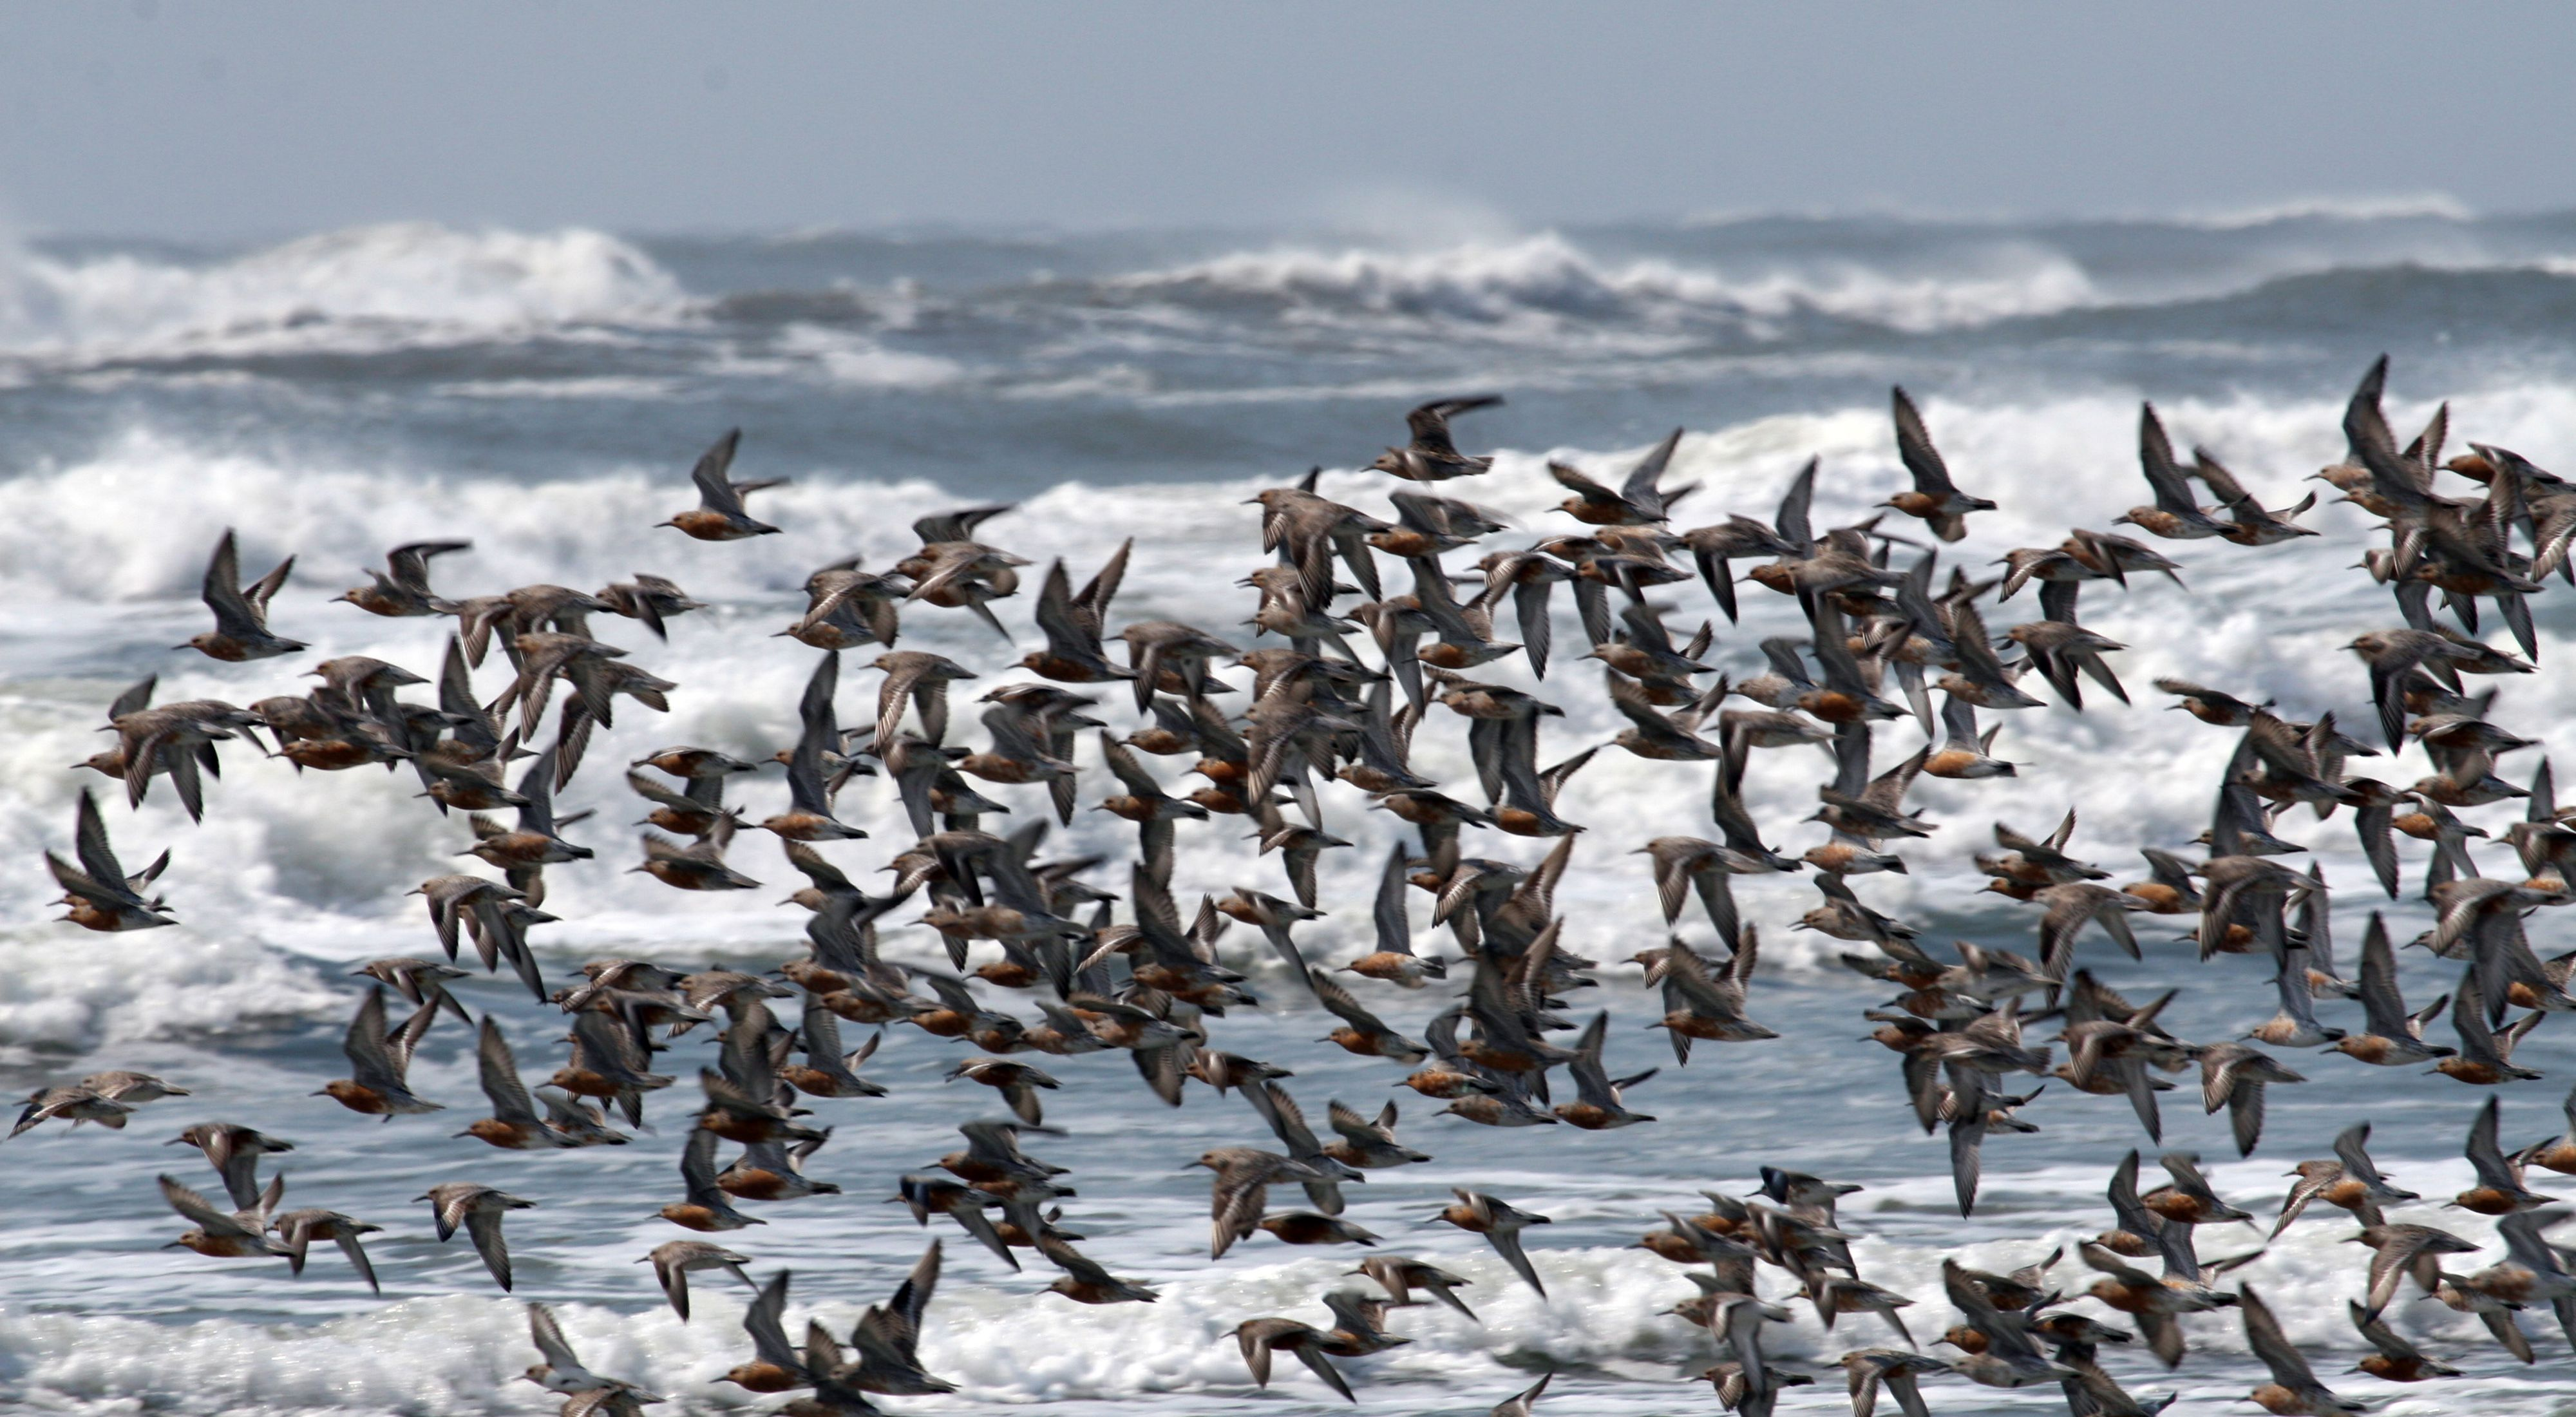 A flock of red knots in flight. Dozens of small brown shore birds flock together flying above a beach on one of Virginia's barrier islands. The Atlantic surf crashes in rolling white caps behind them.